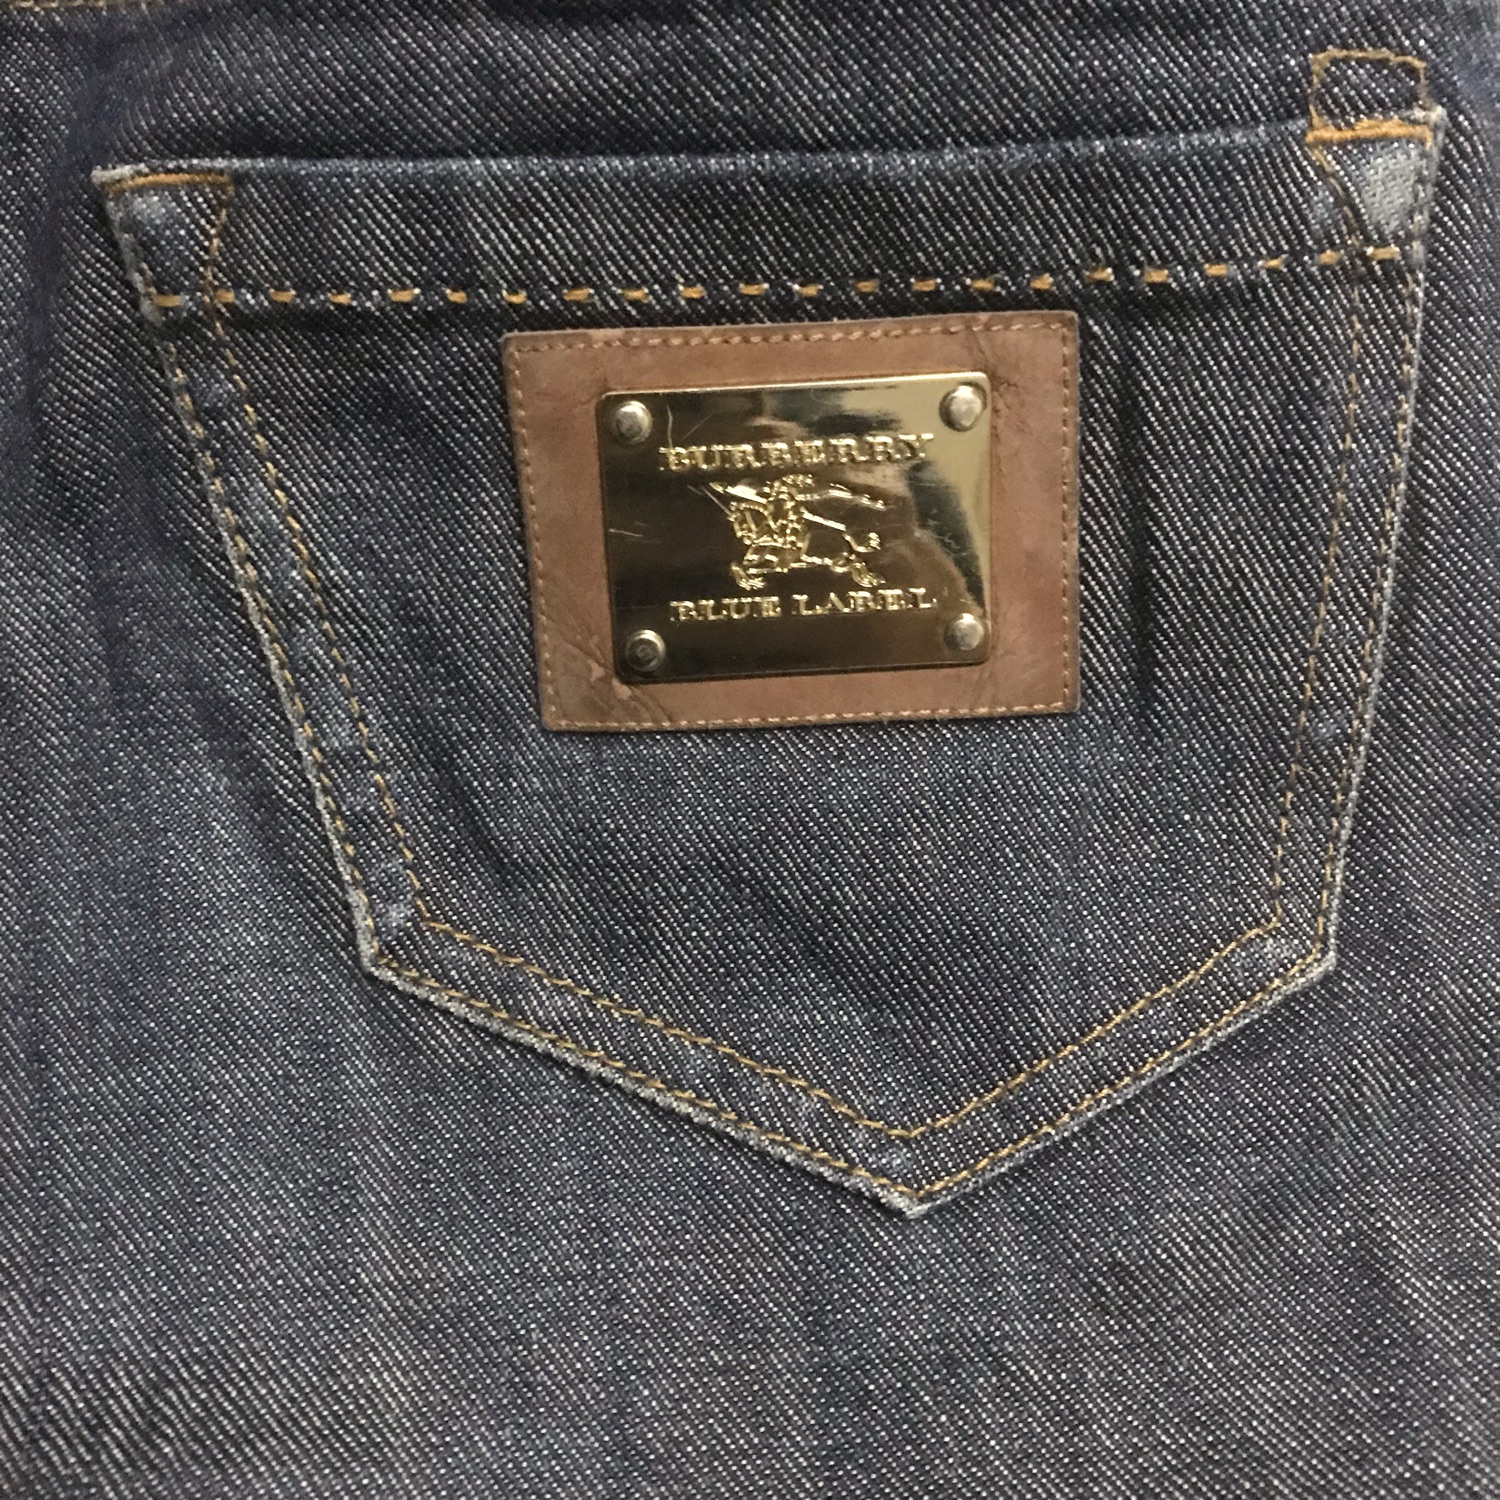 Burberry Blue Label Skinny Jeans